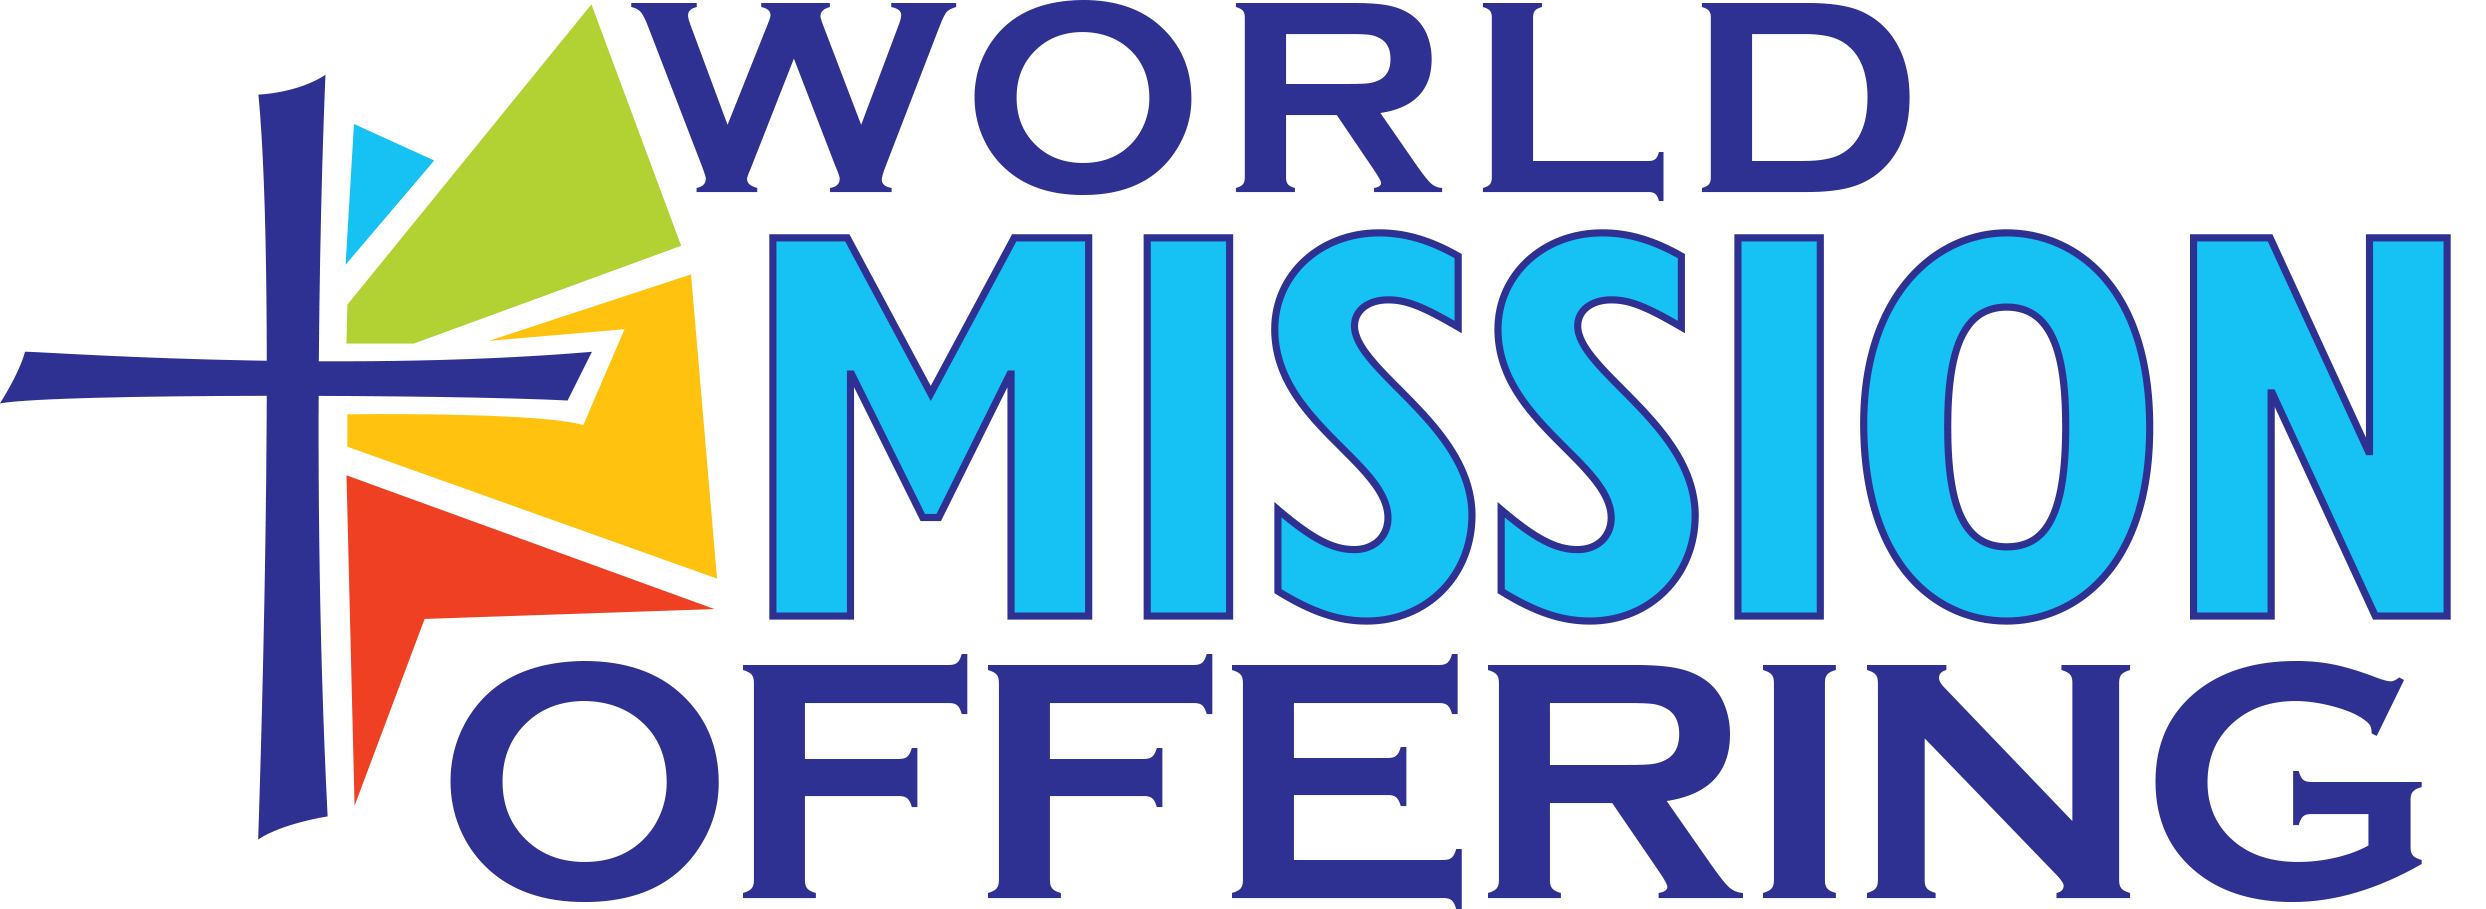 collection of world. Mission clipart education global